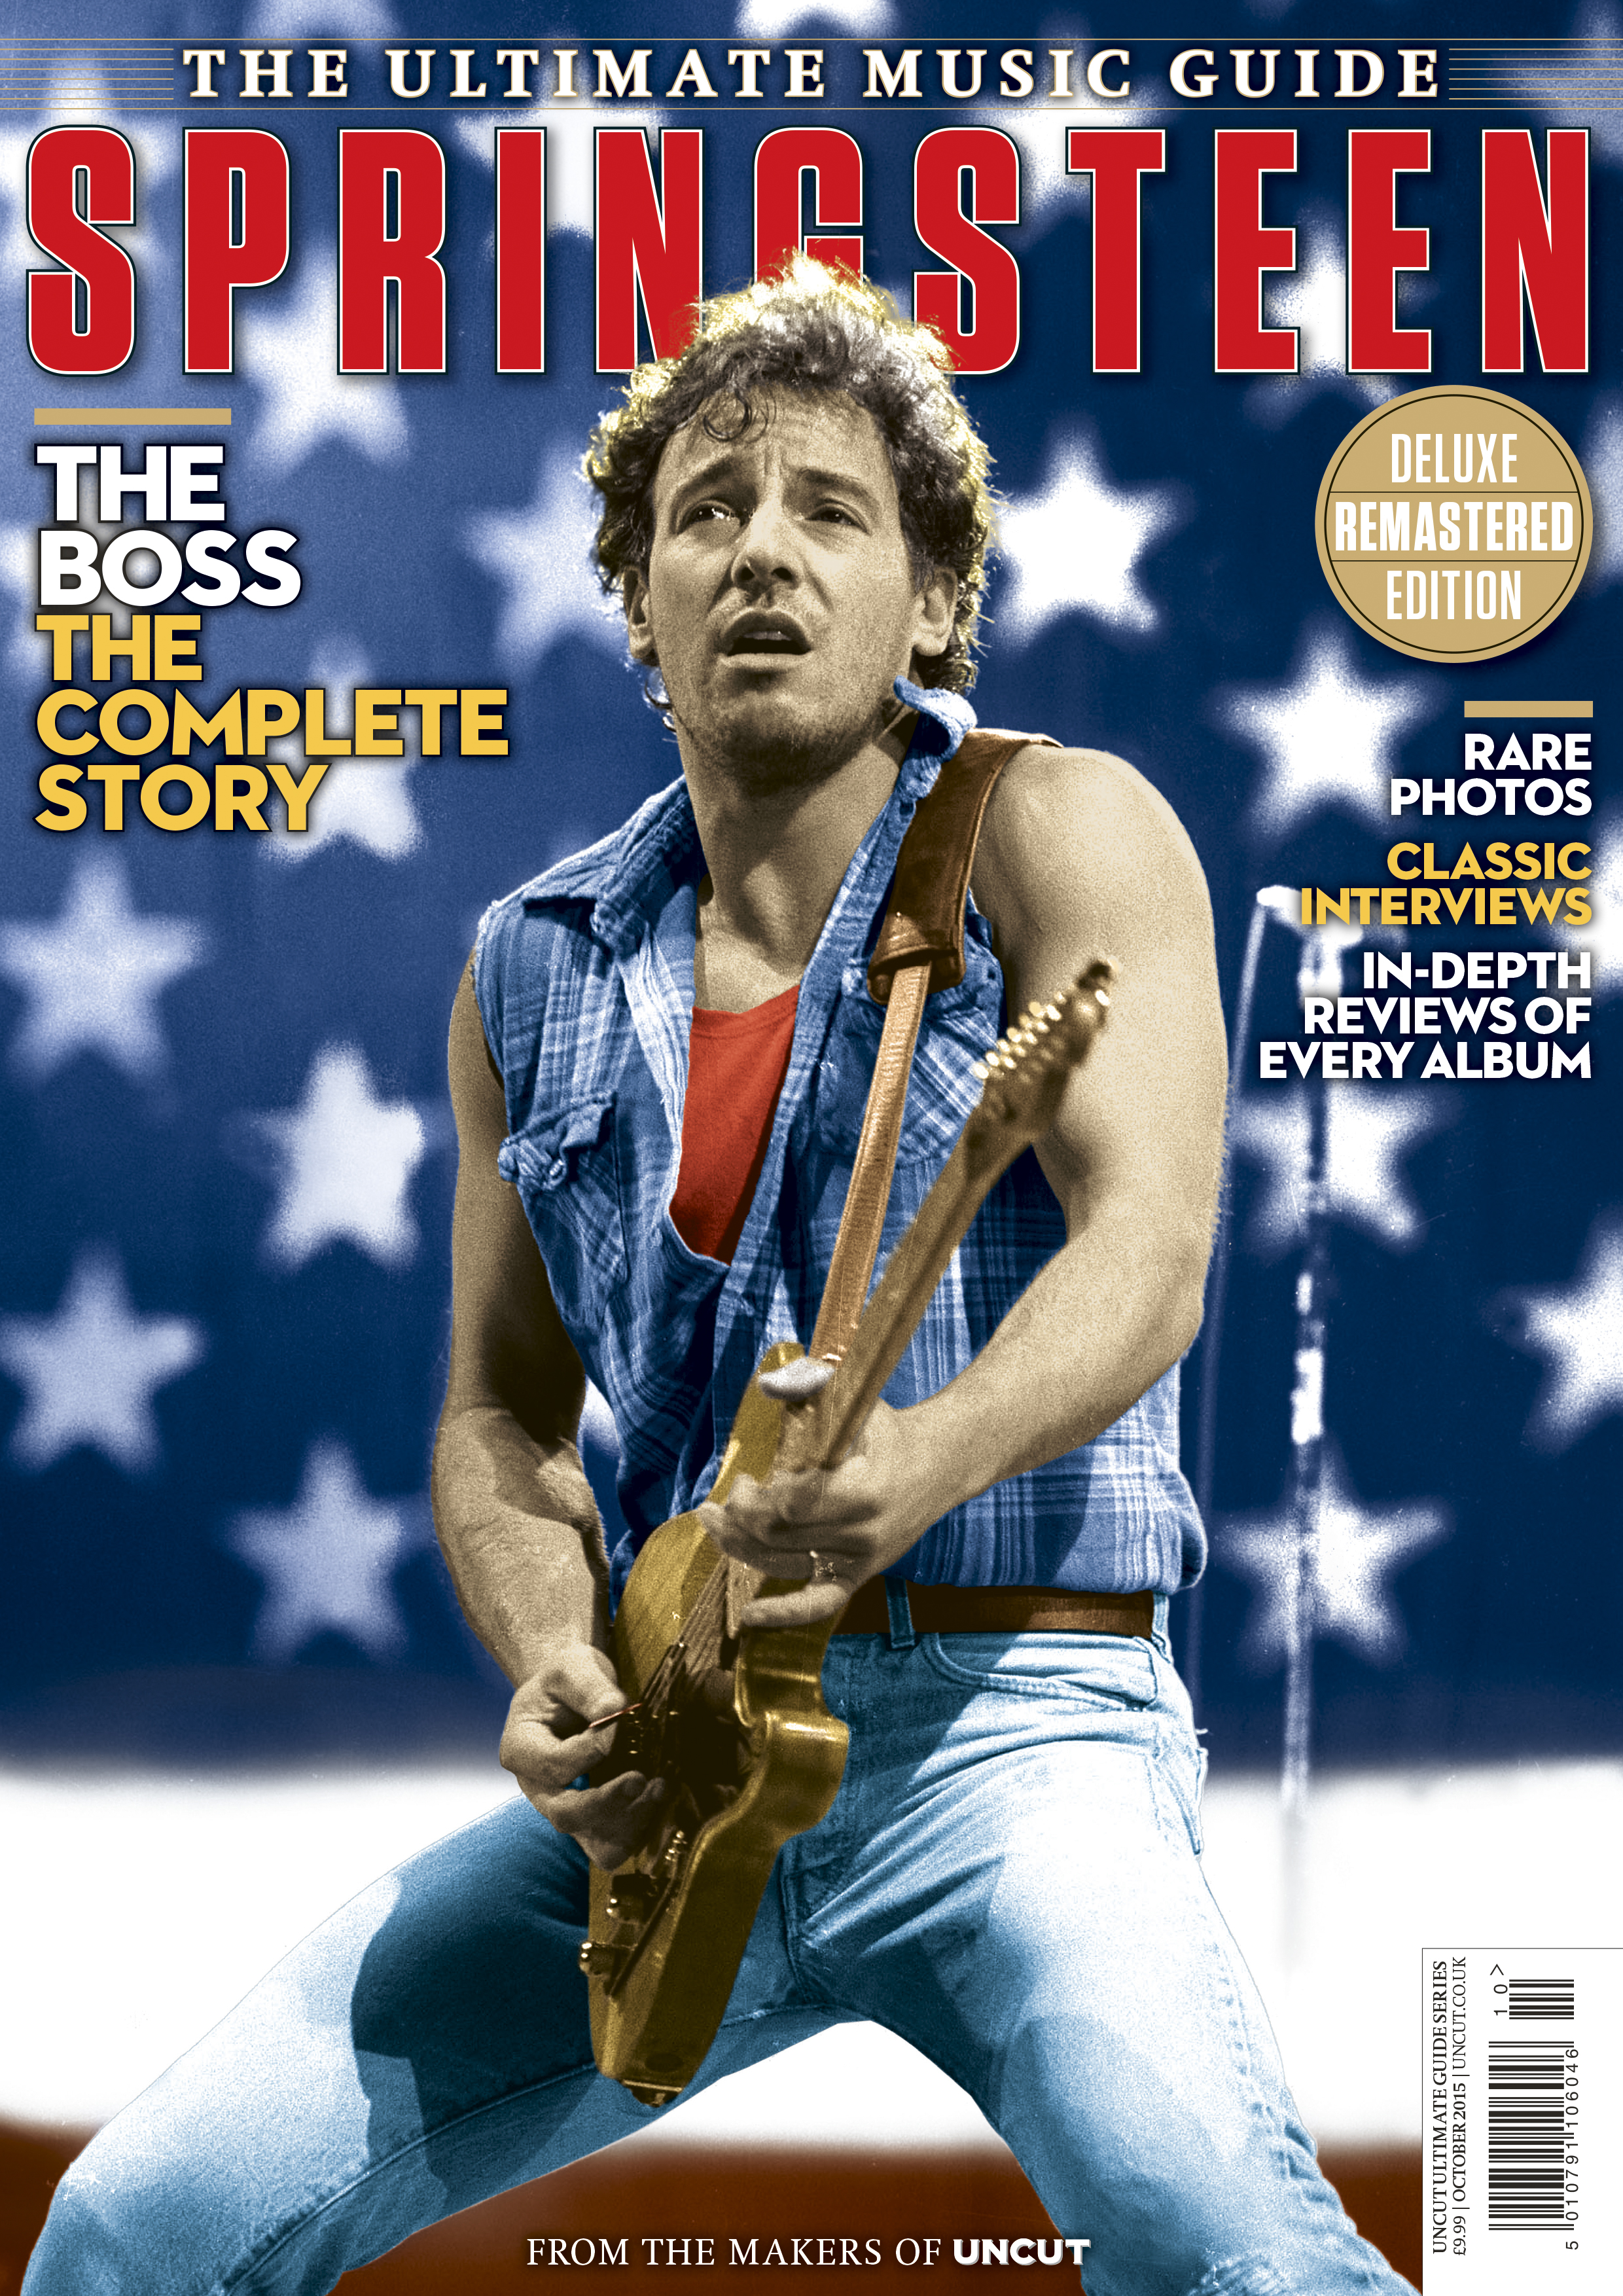 Deluxe Ultimate Music Guide Bruce Springsteen Uncut